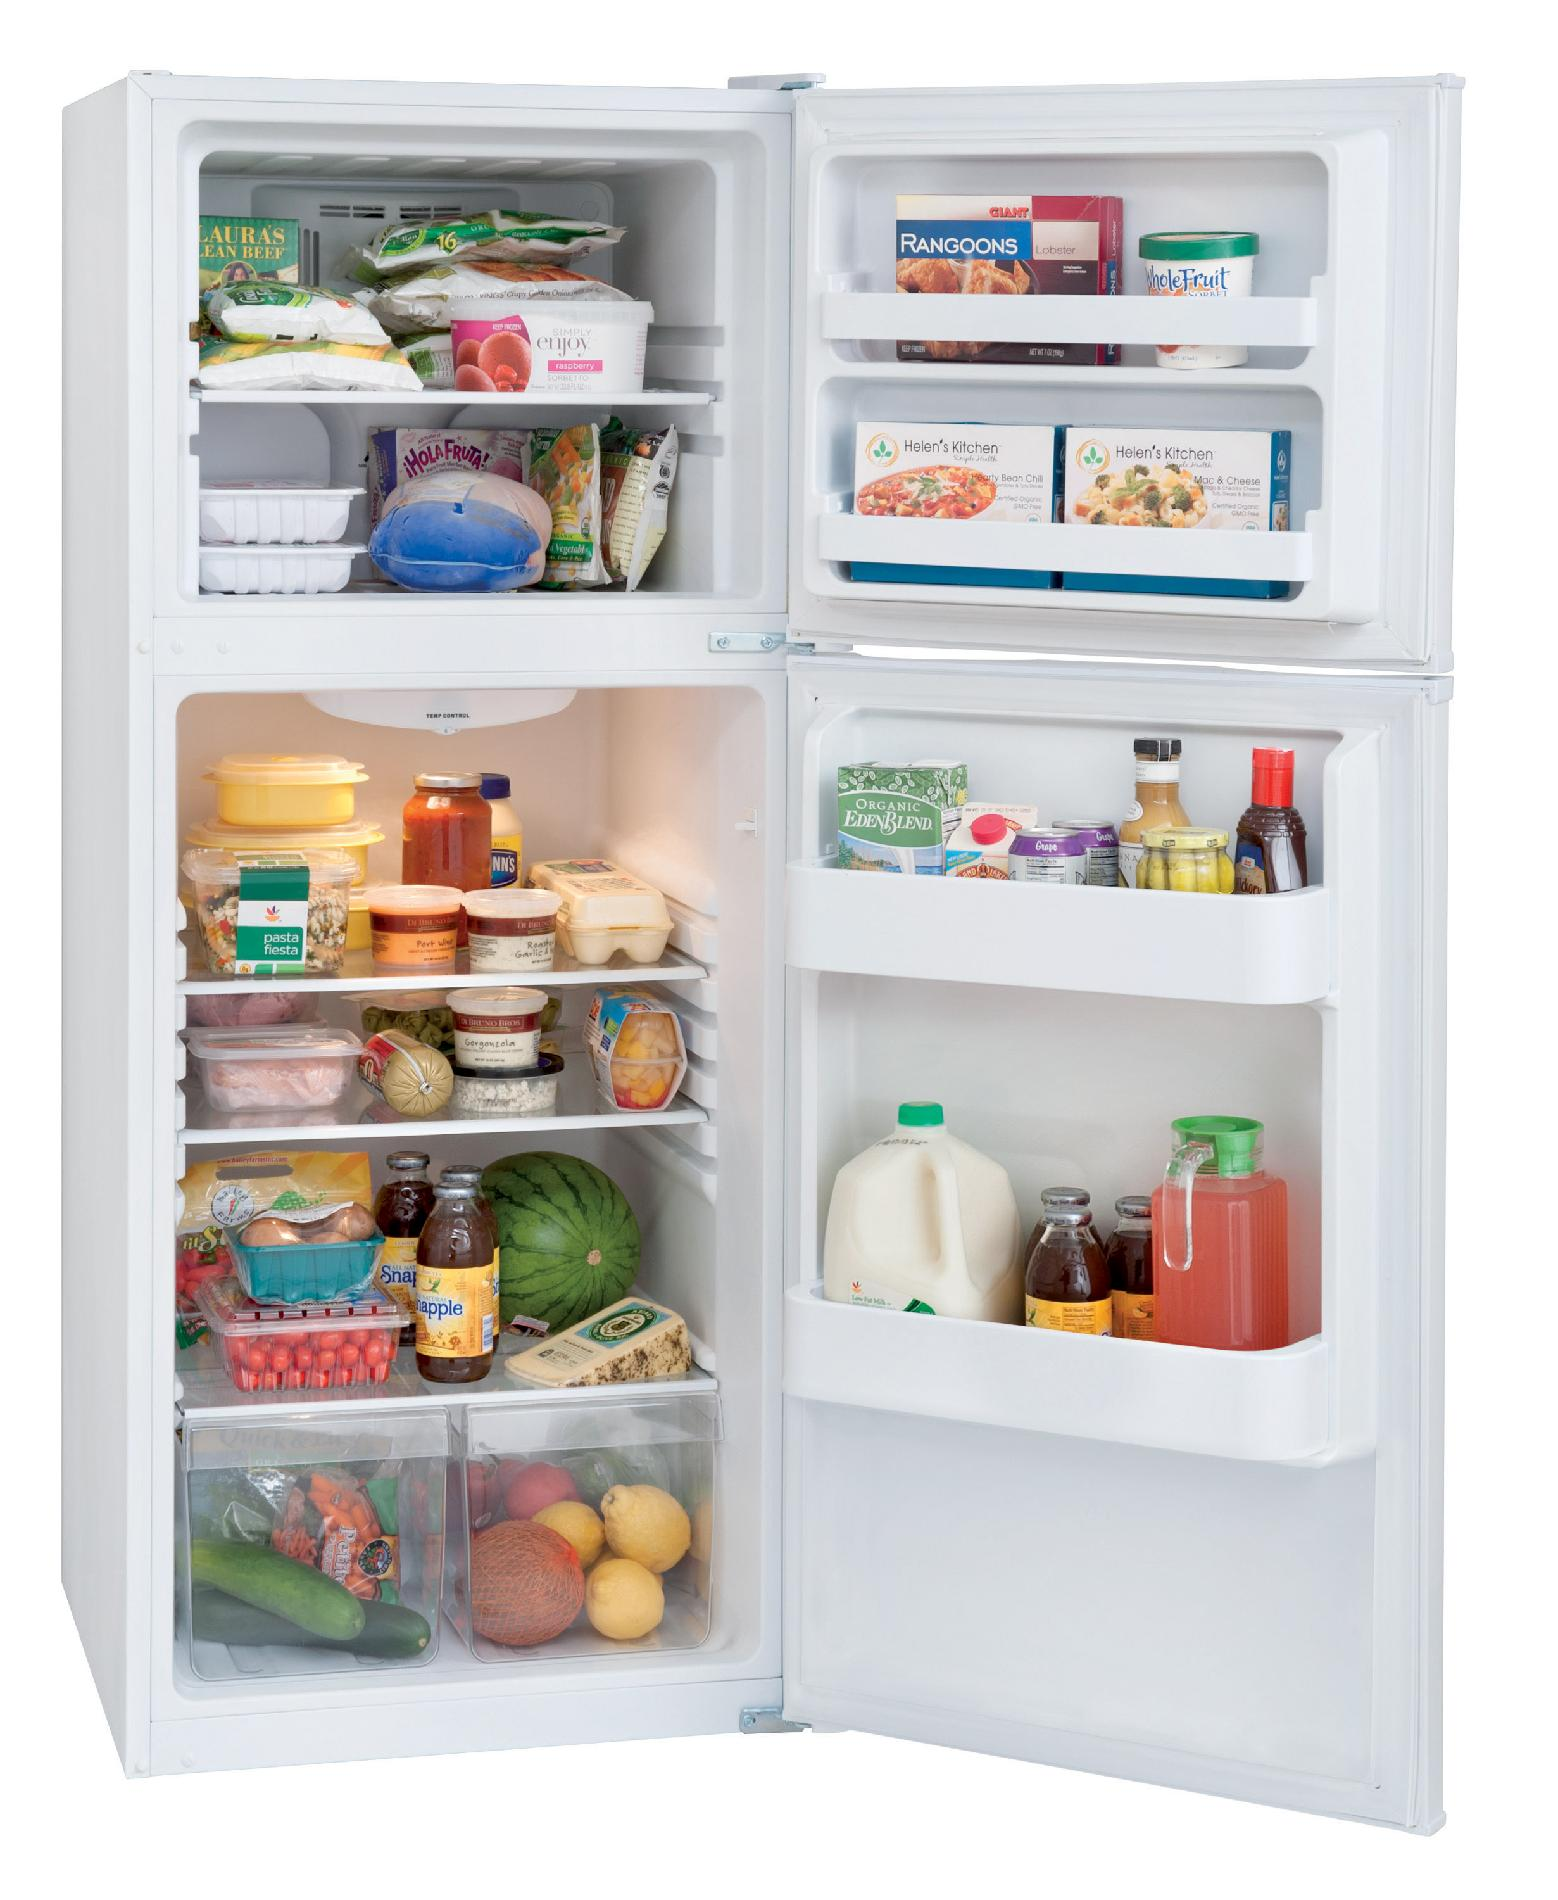 Frigidaire 10.0 cu. ft. Top-Freezer Refrigerator - White